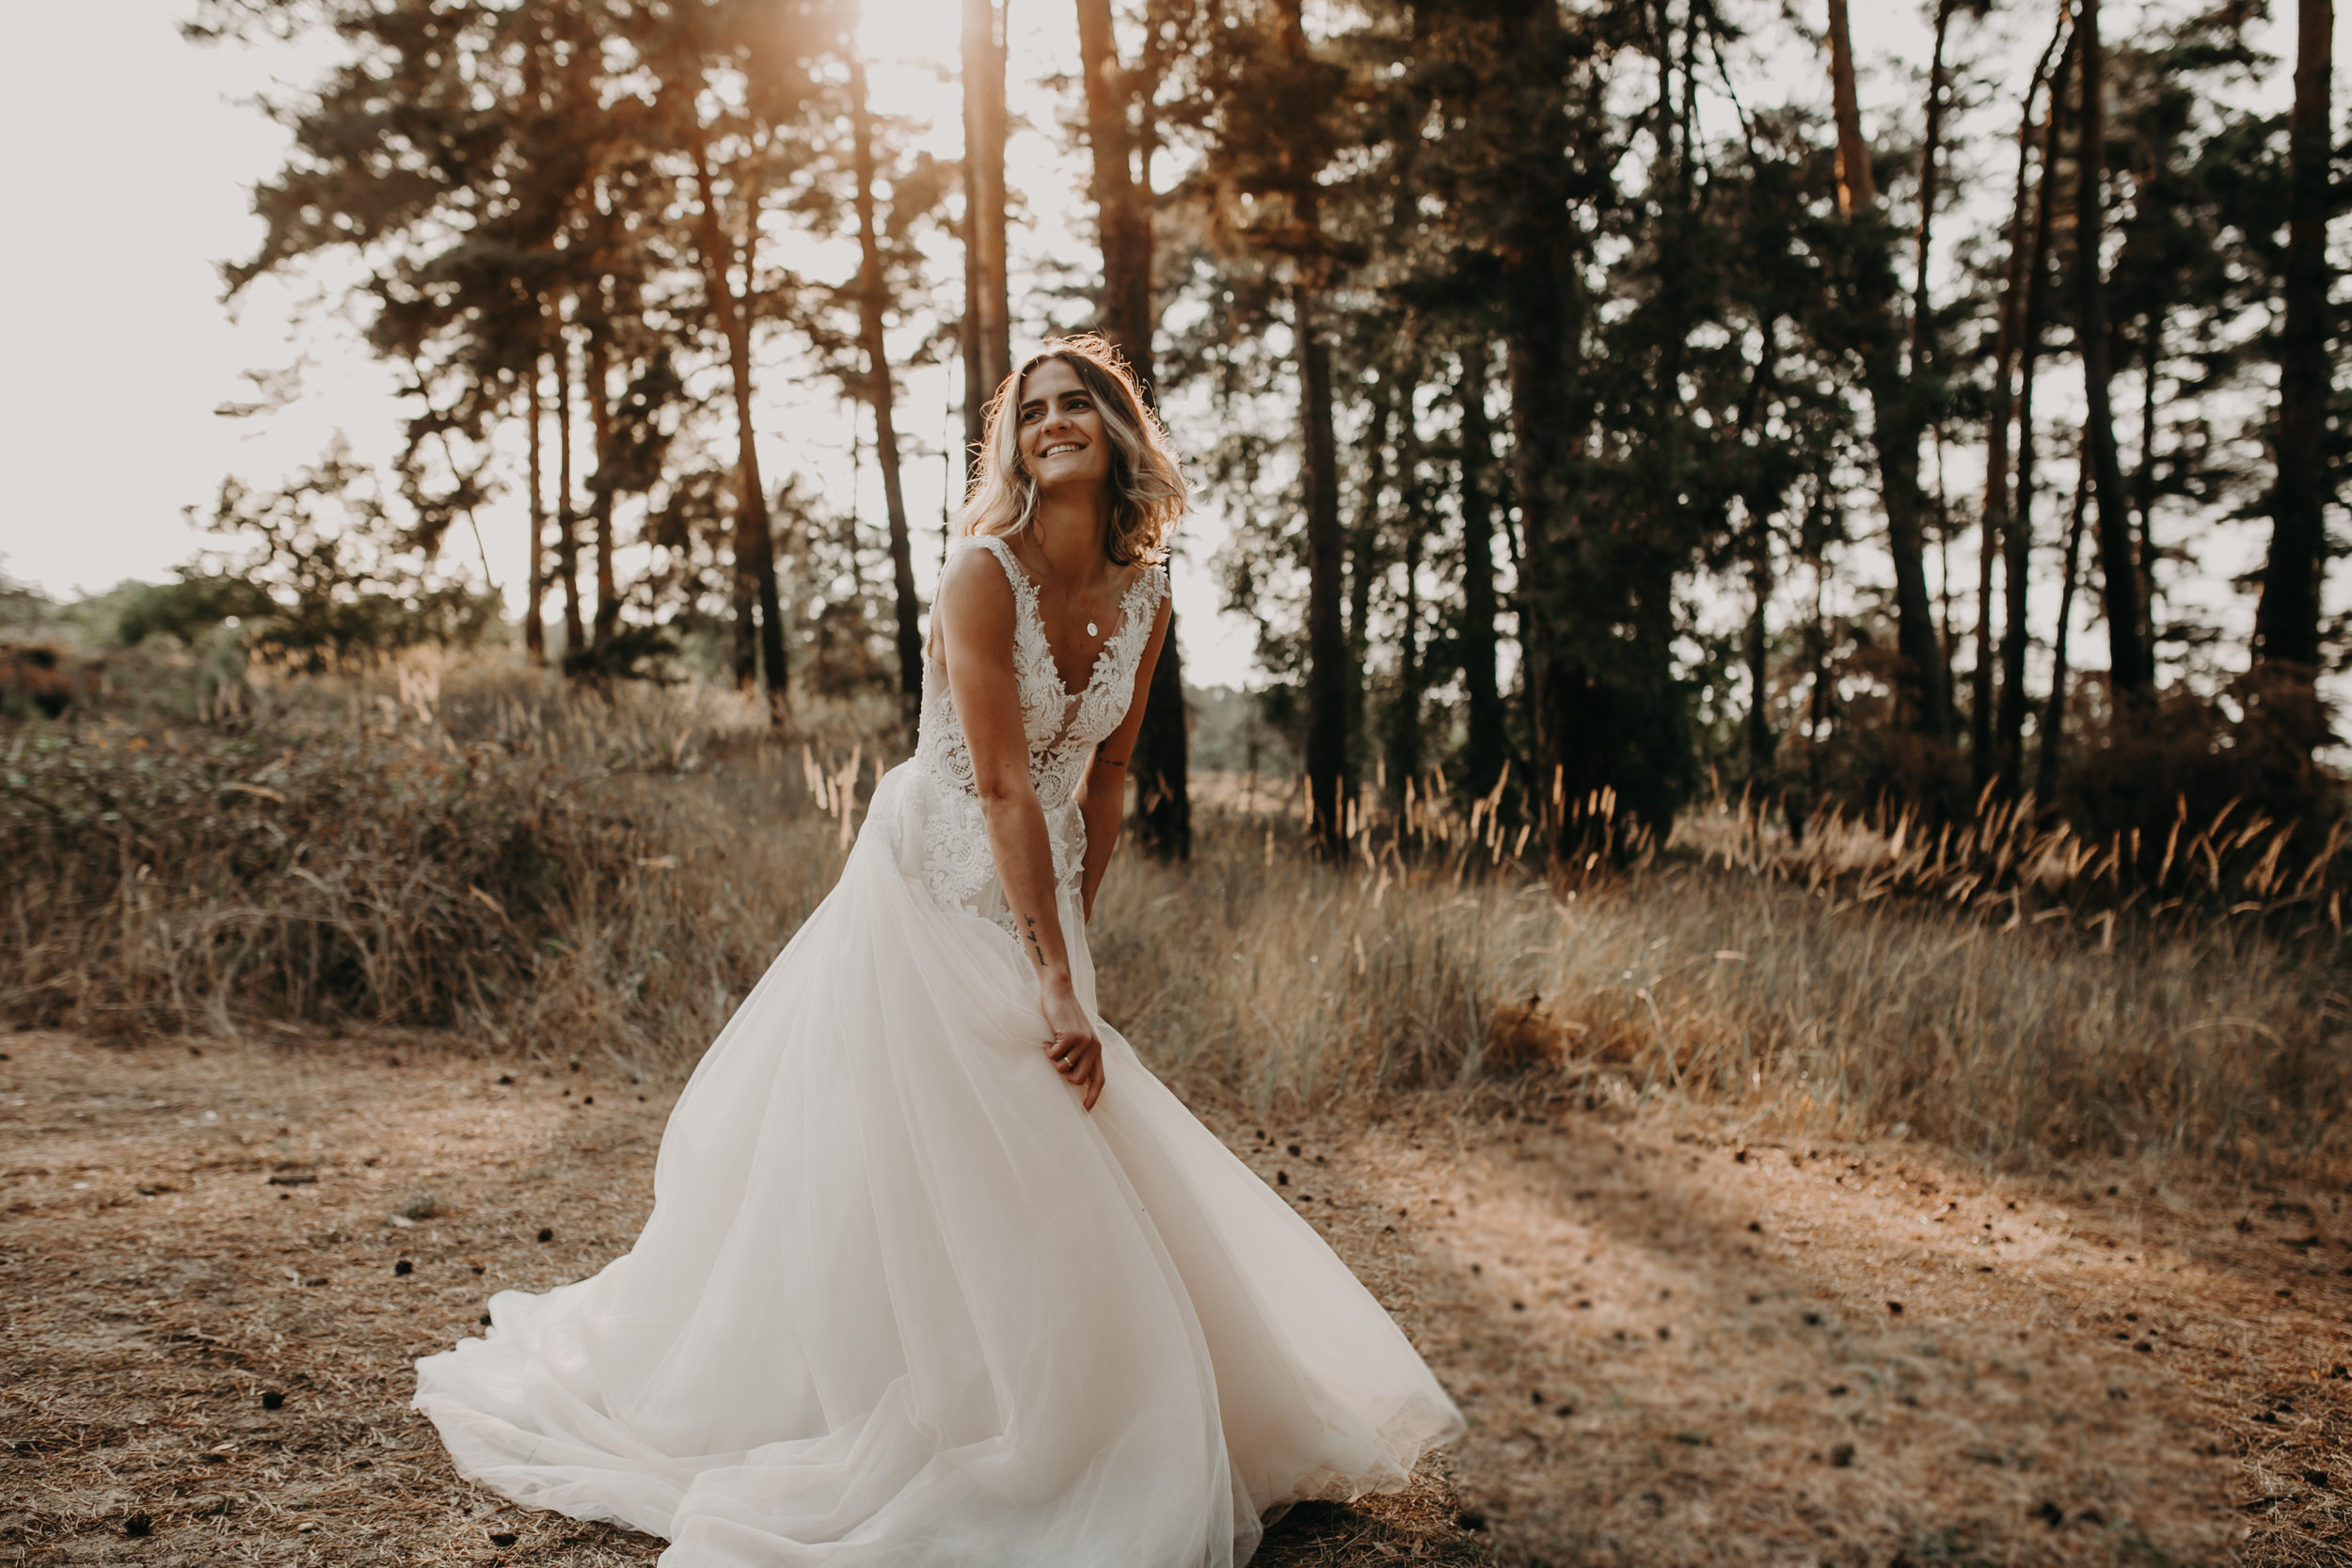 058After Wedding Jacky + Paddy August 2018.jpg